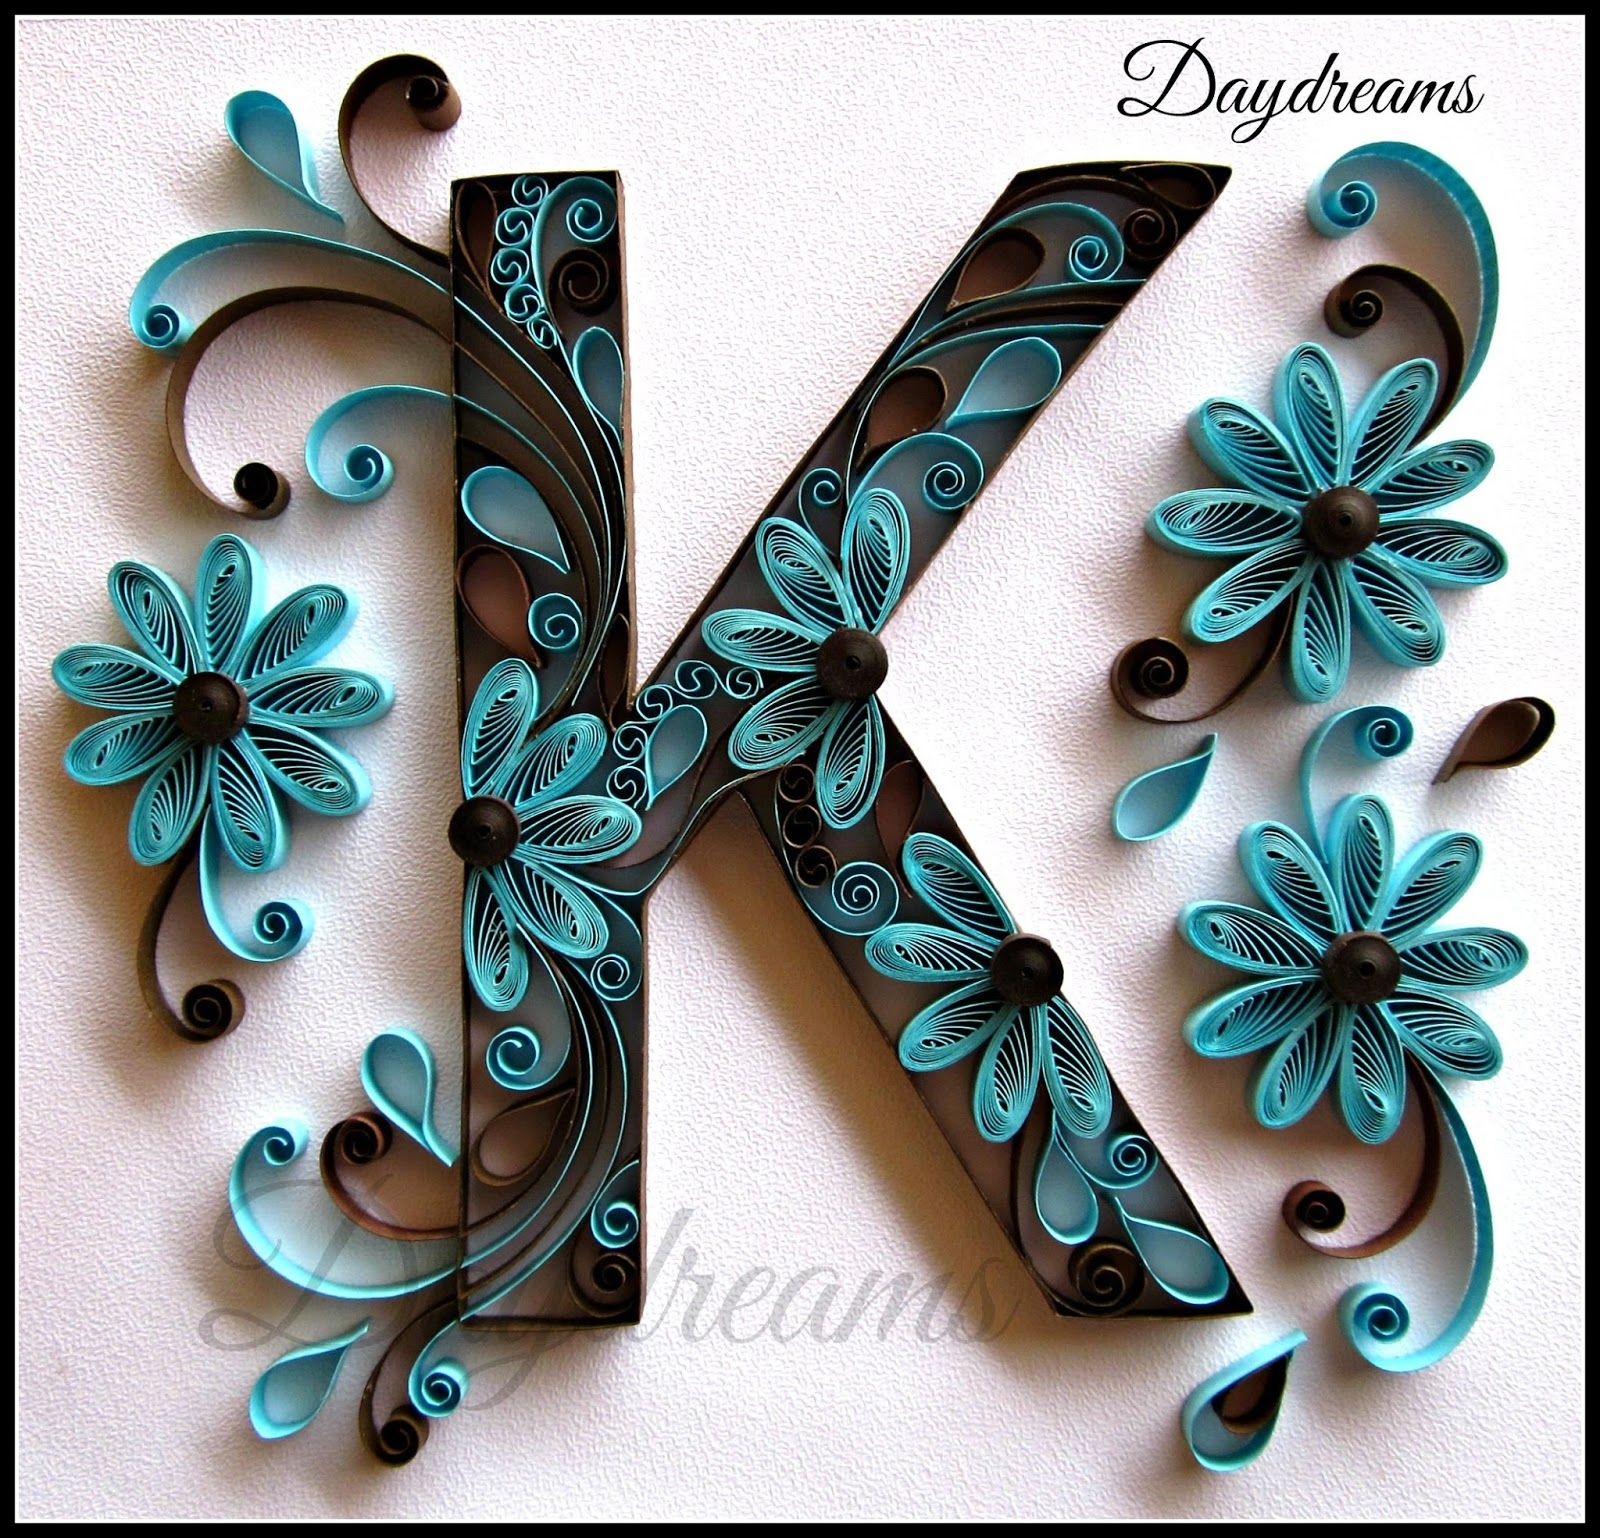 Daydreams quilled k pinteres for Quilling paper art